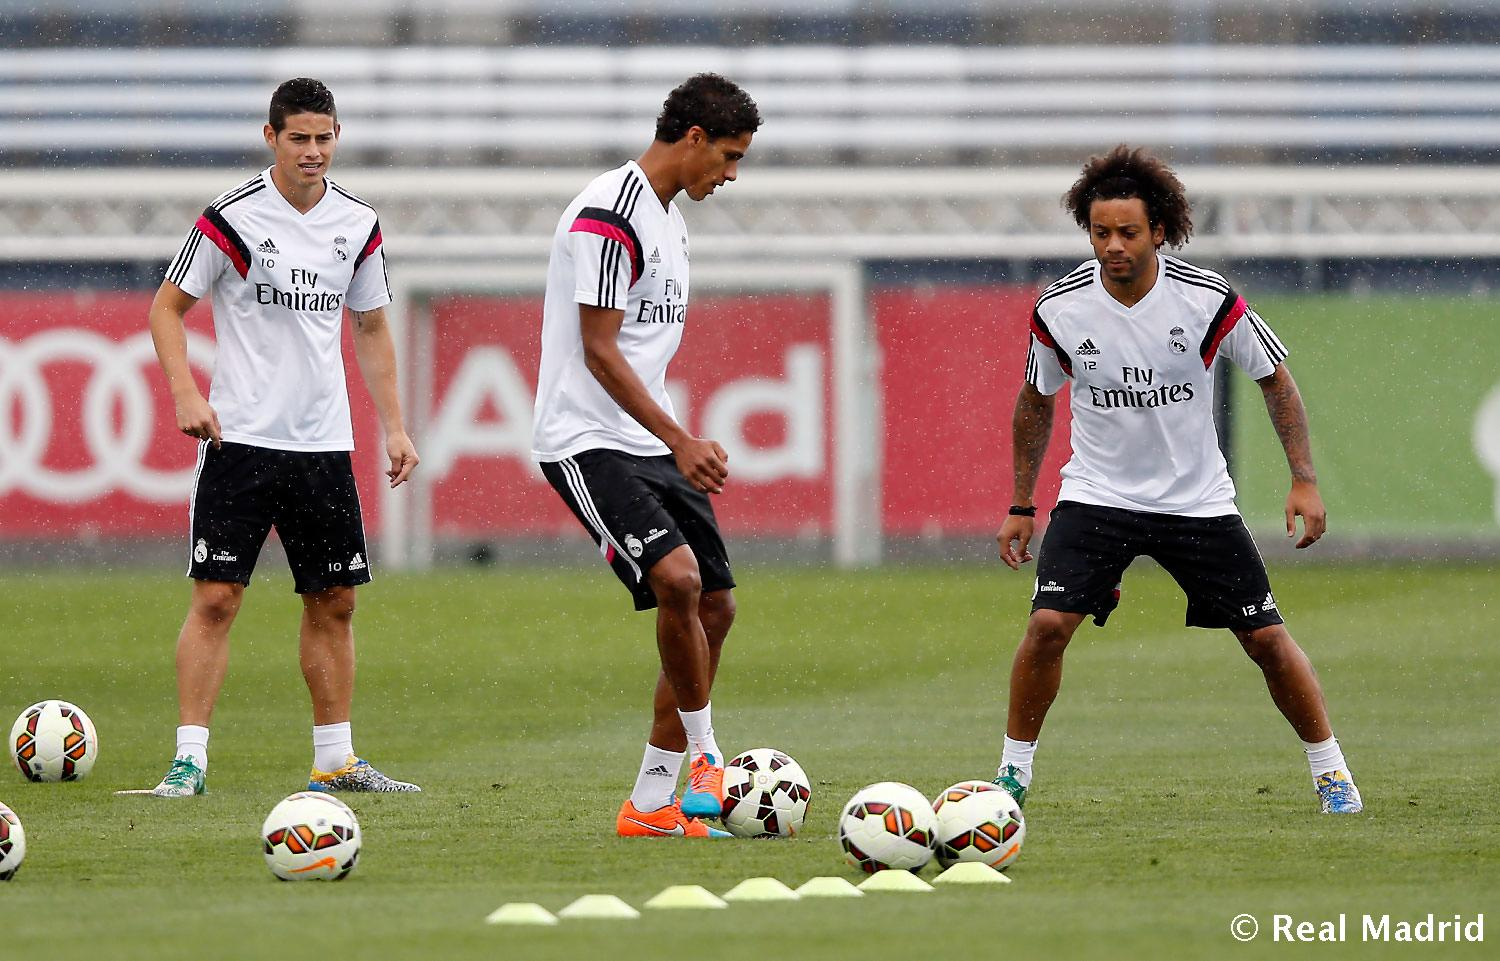 Real Madrid - Entrenamiento del Real Madrid - 19-09-2014